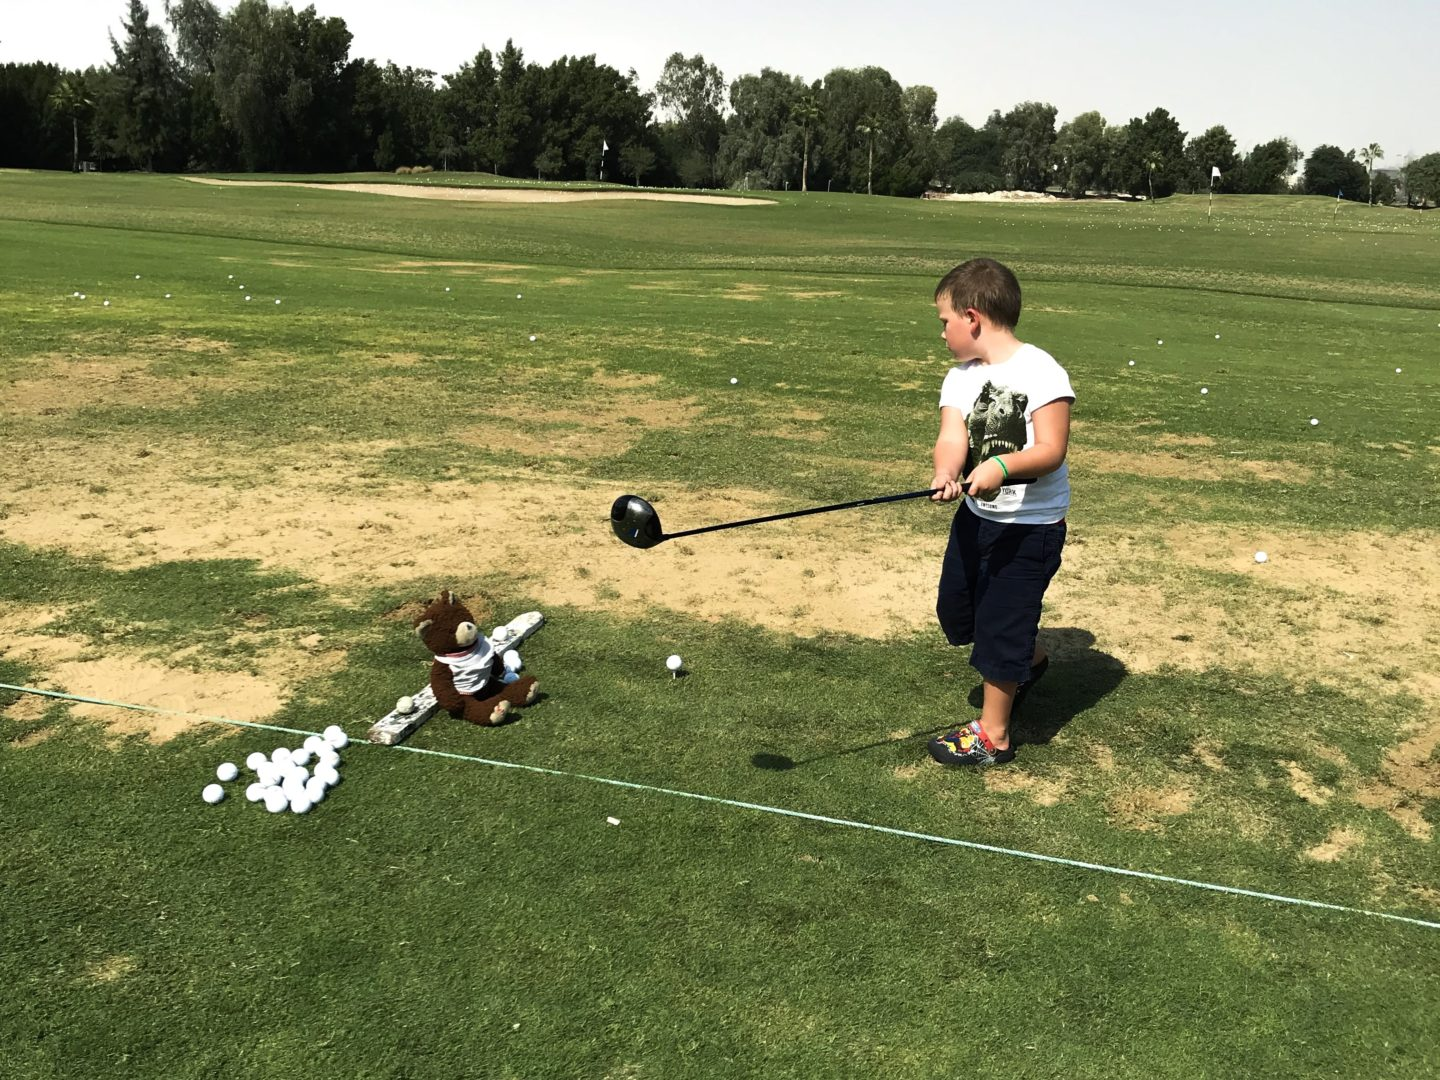 11 incredible things to do in Qatar - Thing 1 at the driving range